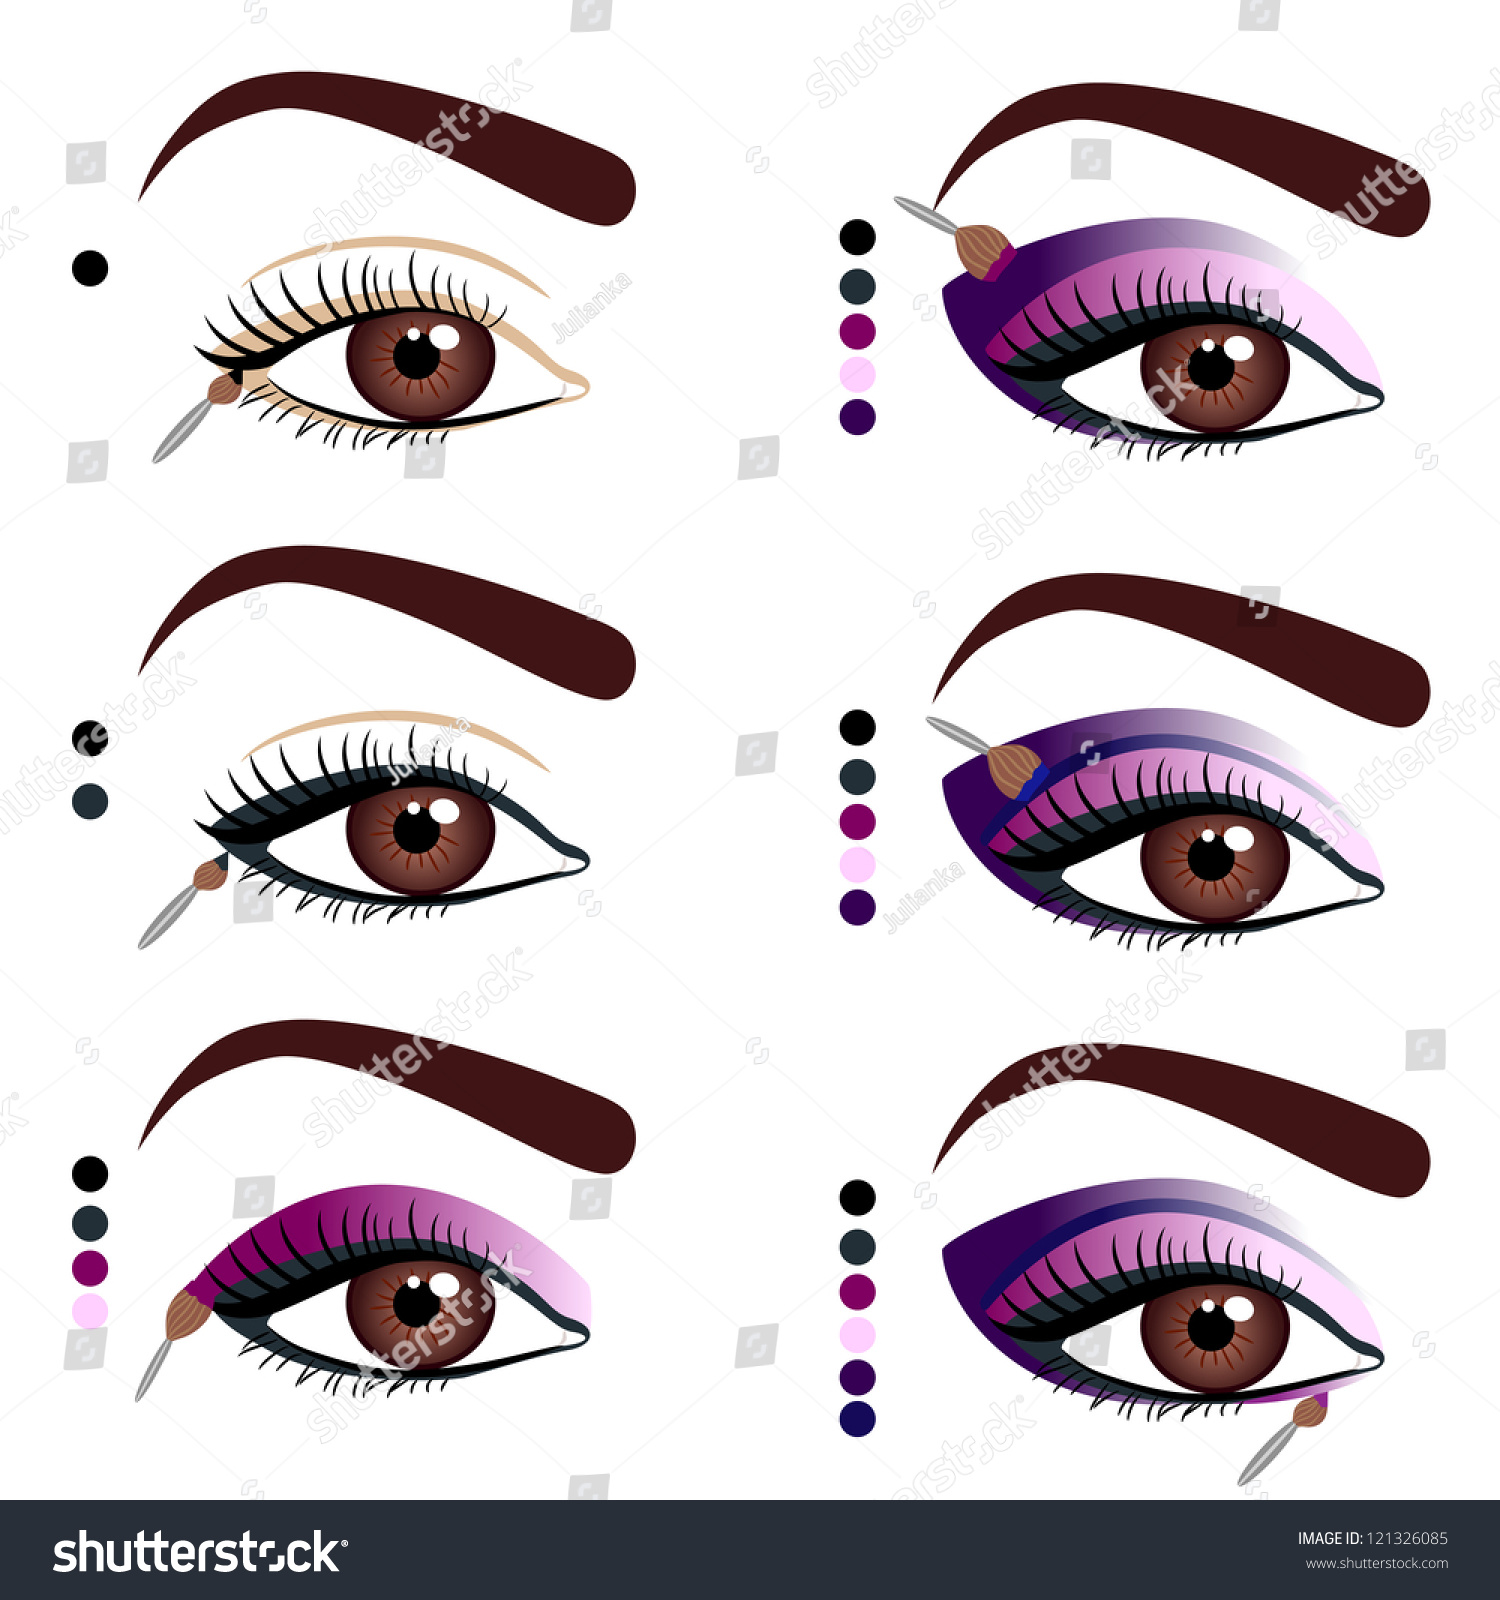 Illustration Stages Applying Makeup On Eyes Stock Vector Royalty